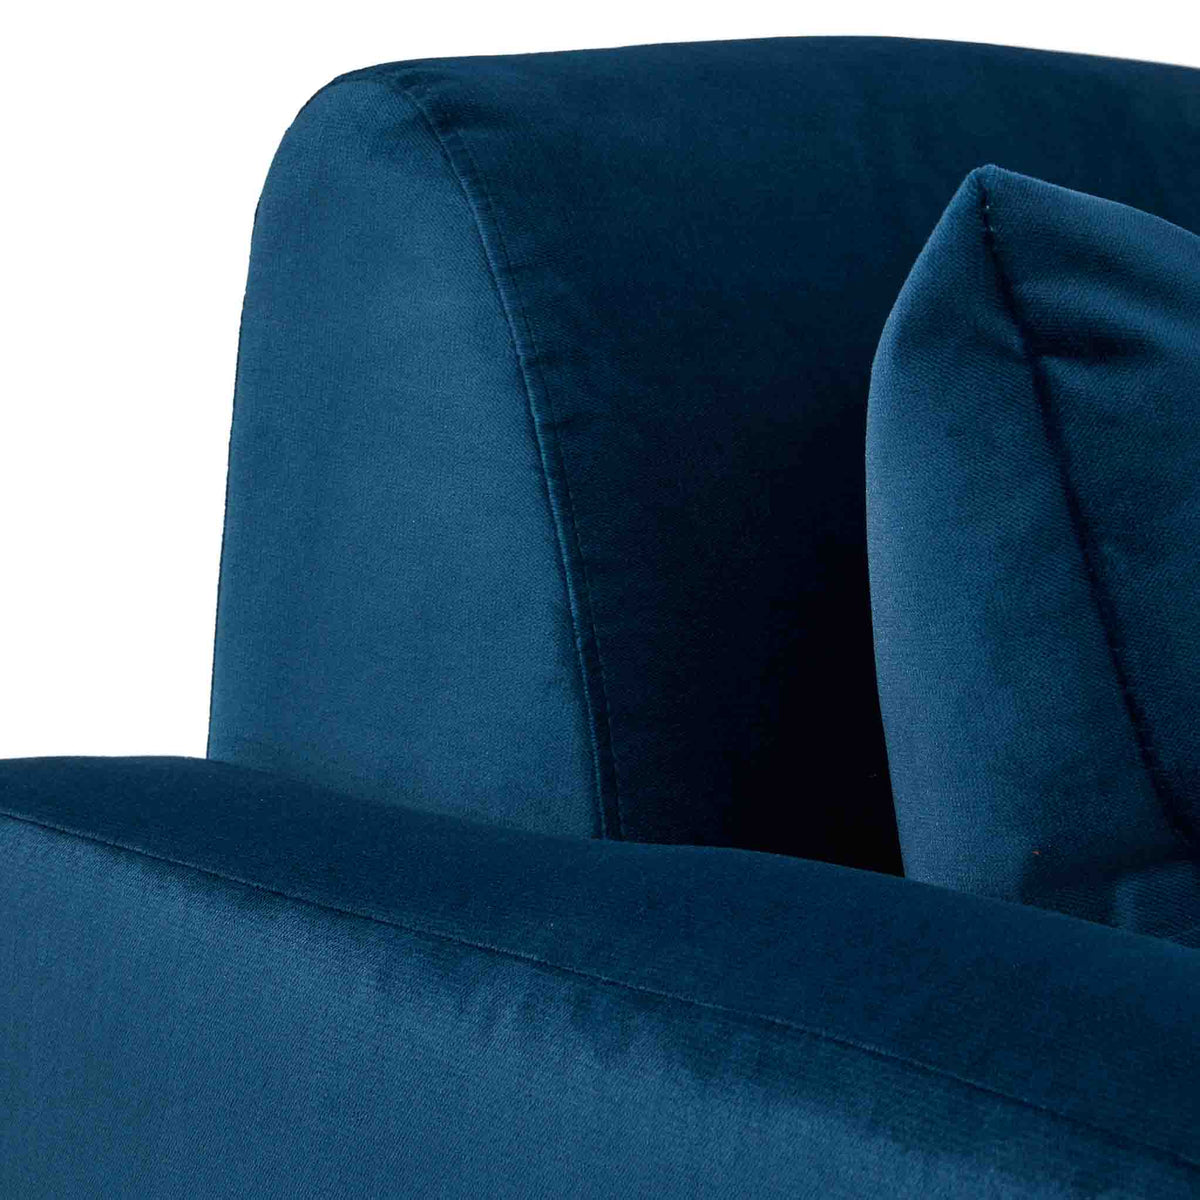 close up of the Piper Peacock 2 Seater Sofa from Roseland Furniture